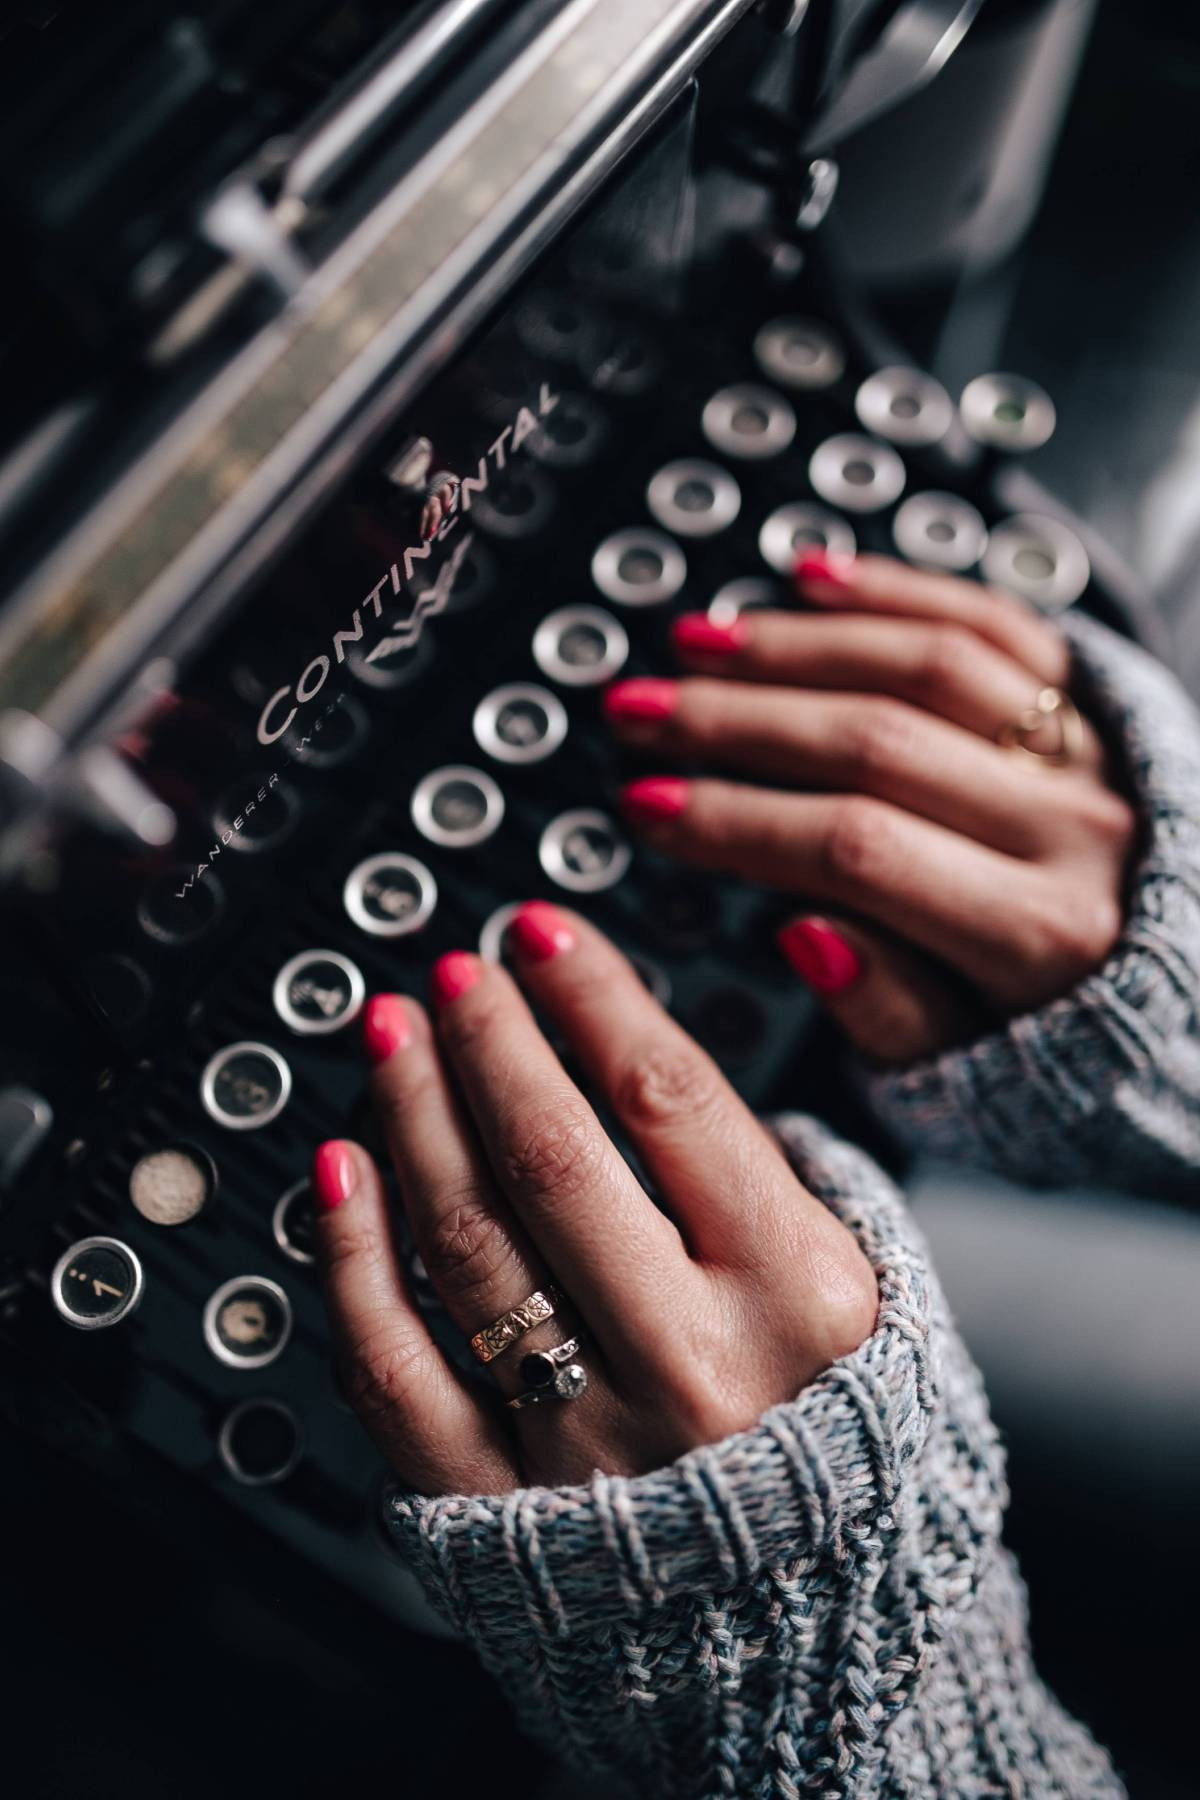 kaboompics_Woman typing on an old typewriter